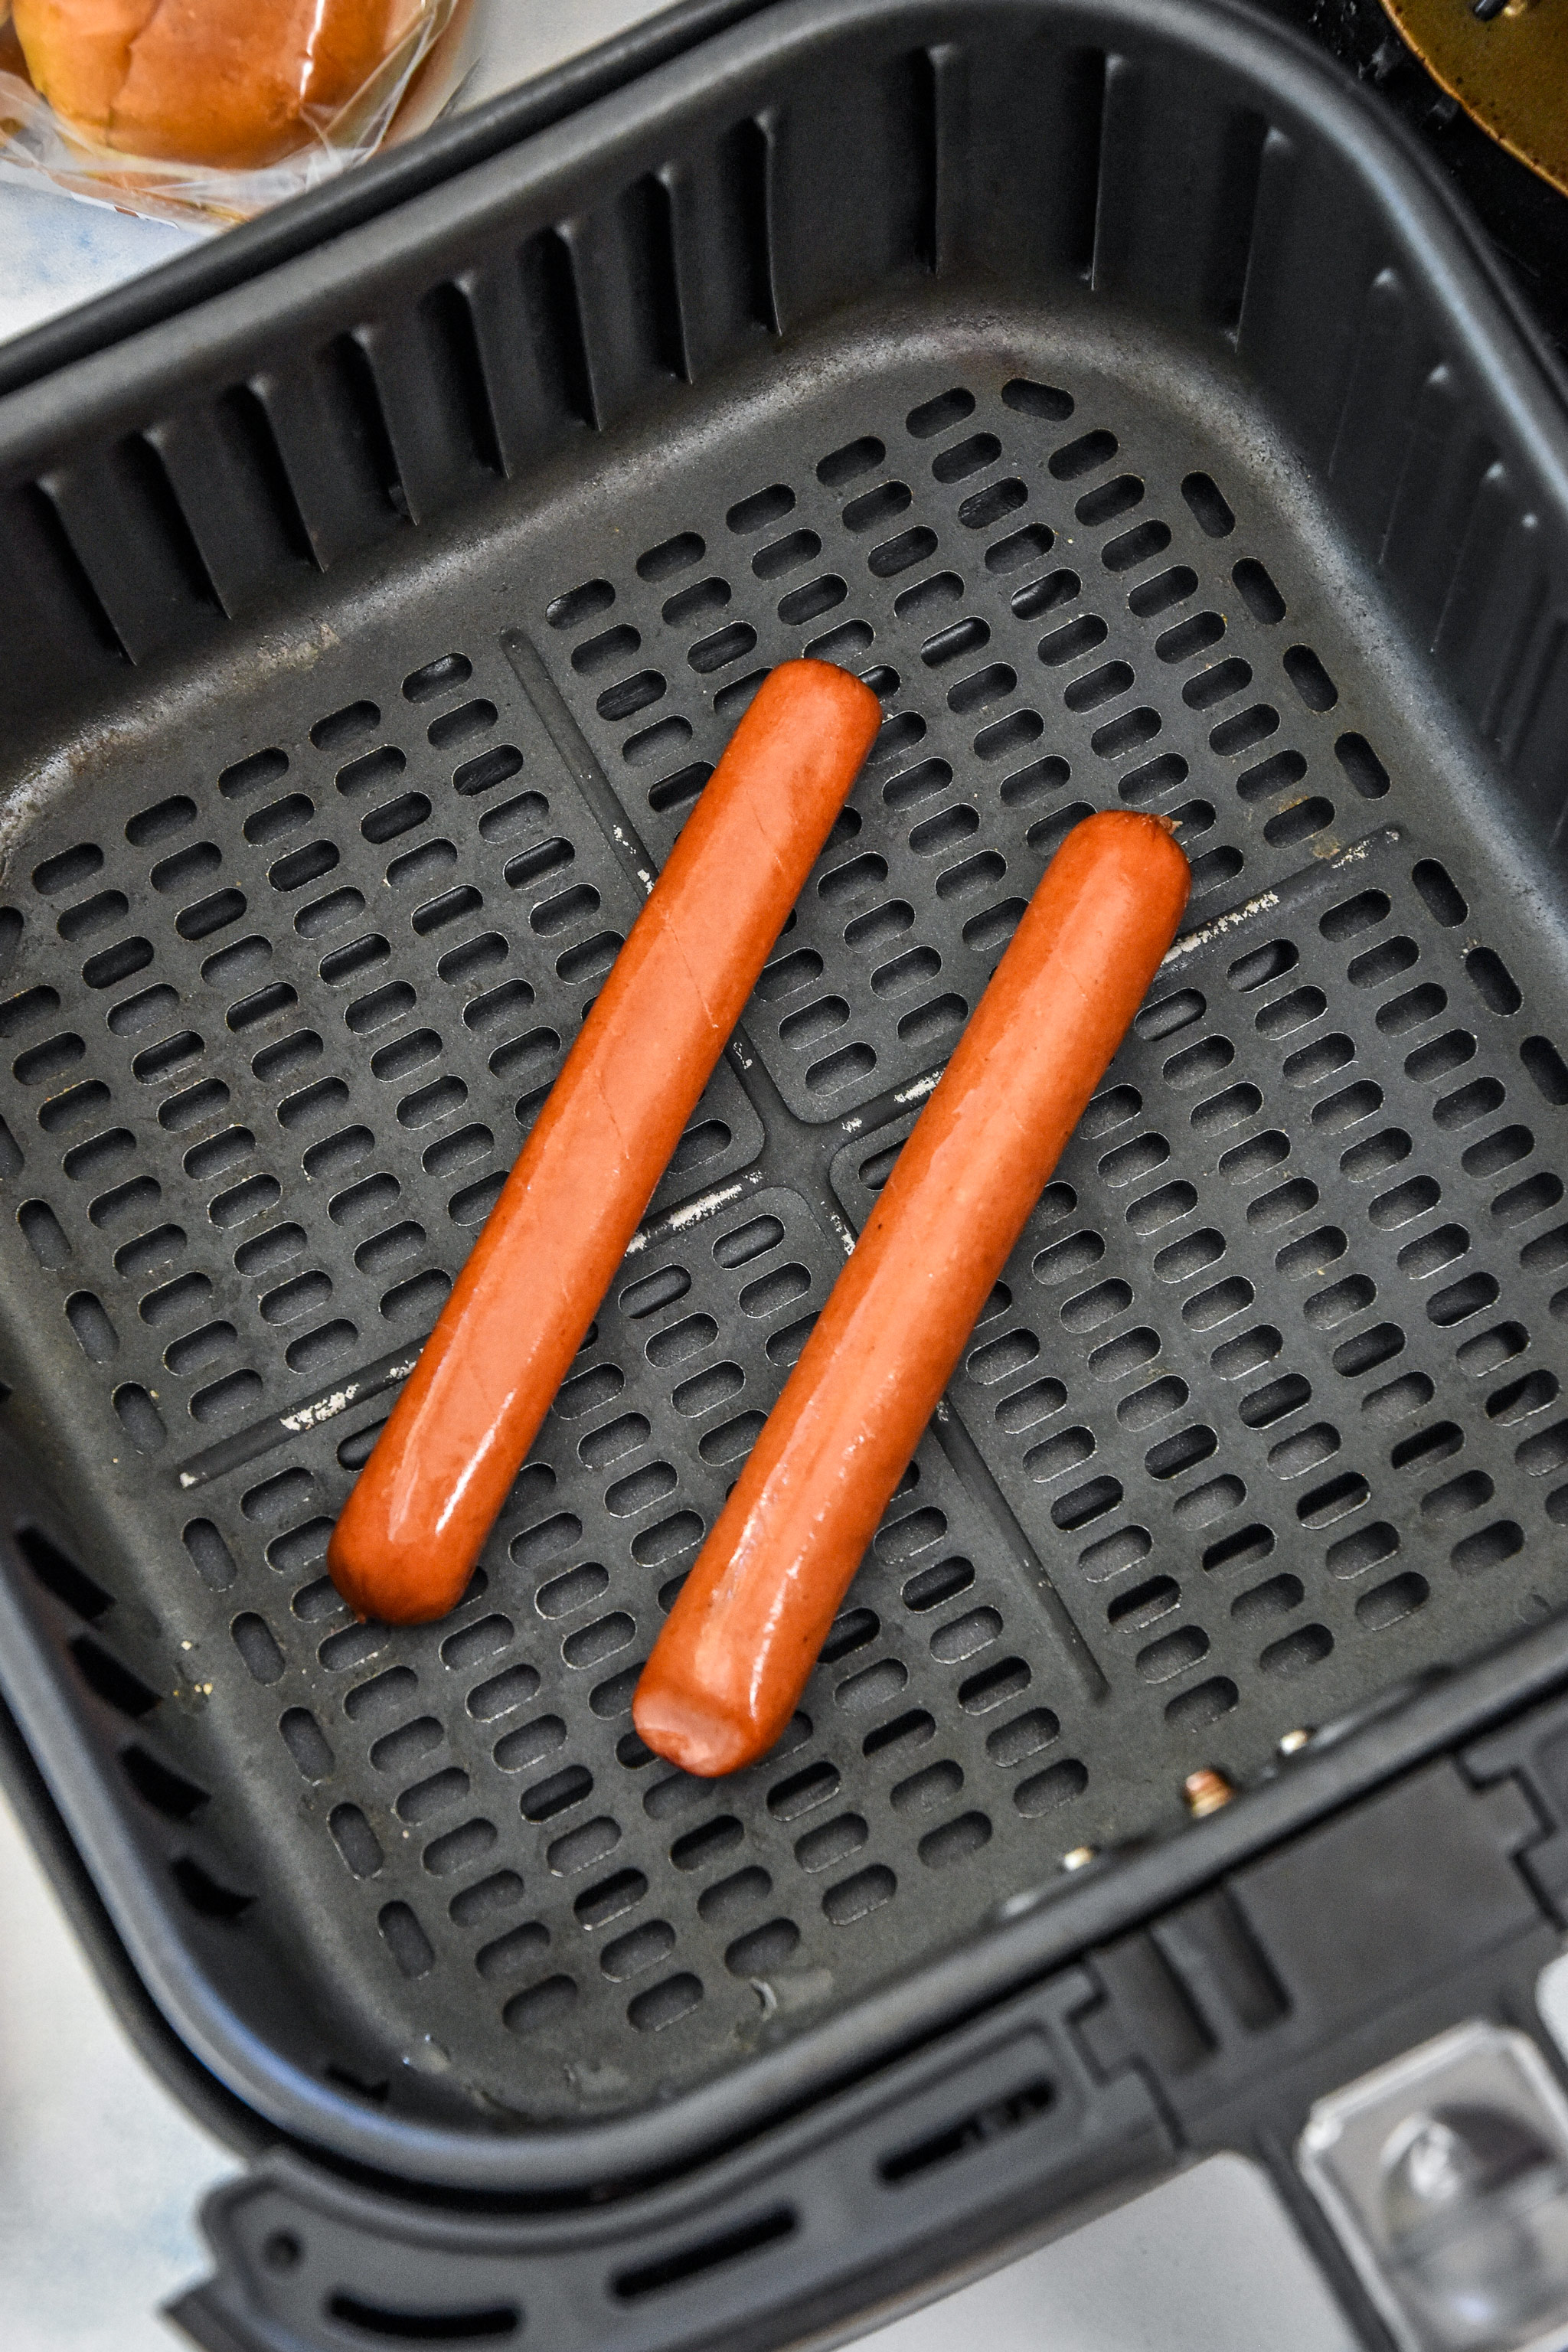 hot dogs in the air fryer basket about to be cooked.